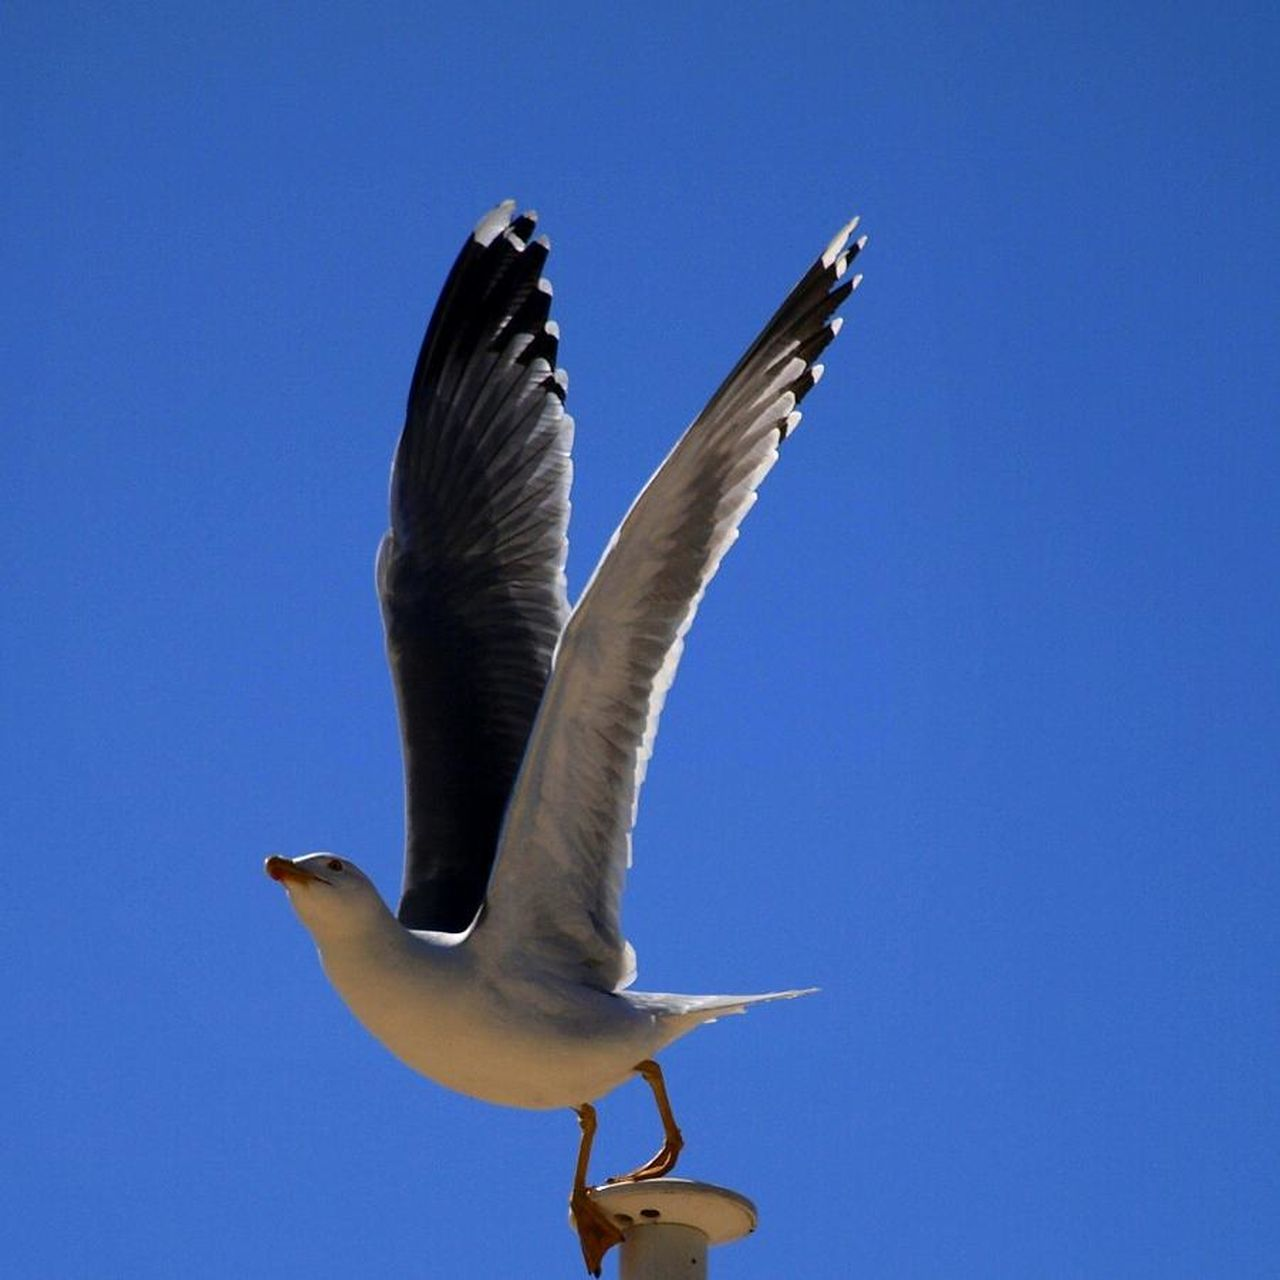 bird, animals in the wild, animal themes, animal wildlife, one animal, spread wings, flying, no people, clear sky, day, seagull, low angle view, blue, outdoors, nature, sky